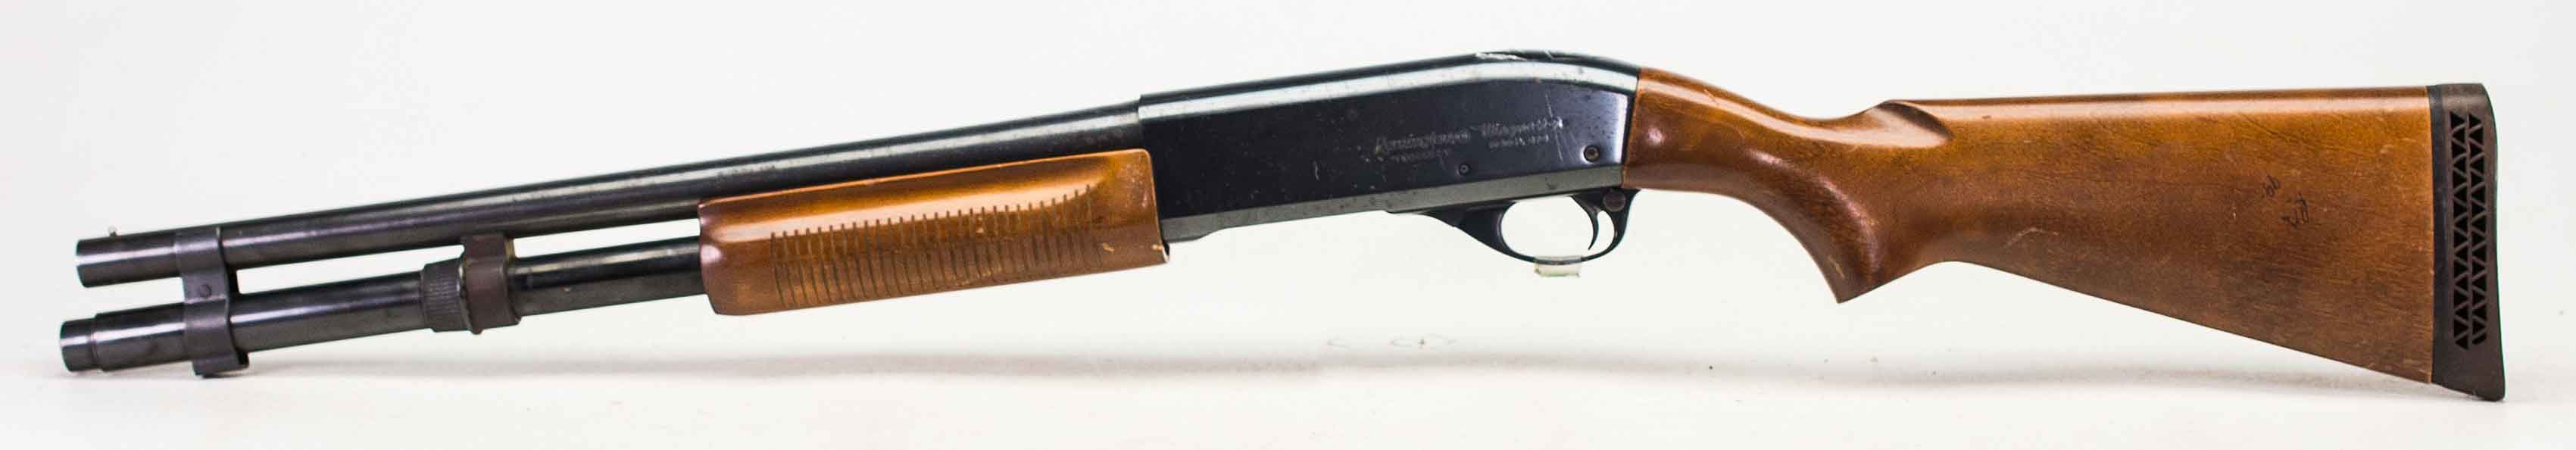 Remington 870 Wingmaster Auction Id 7822564 End Time Apr 20 Parts List Wallpapers View Full Size Images